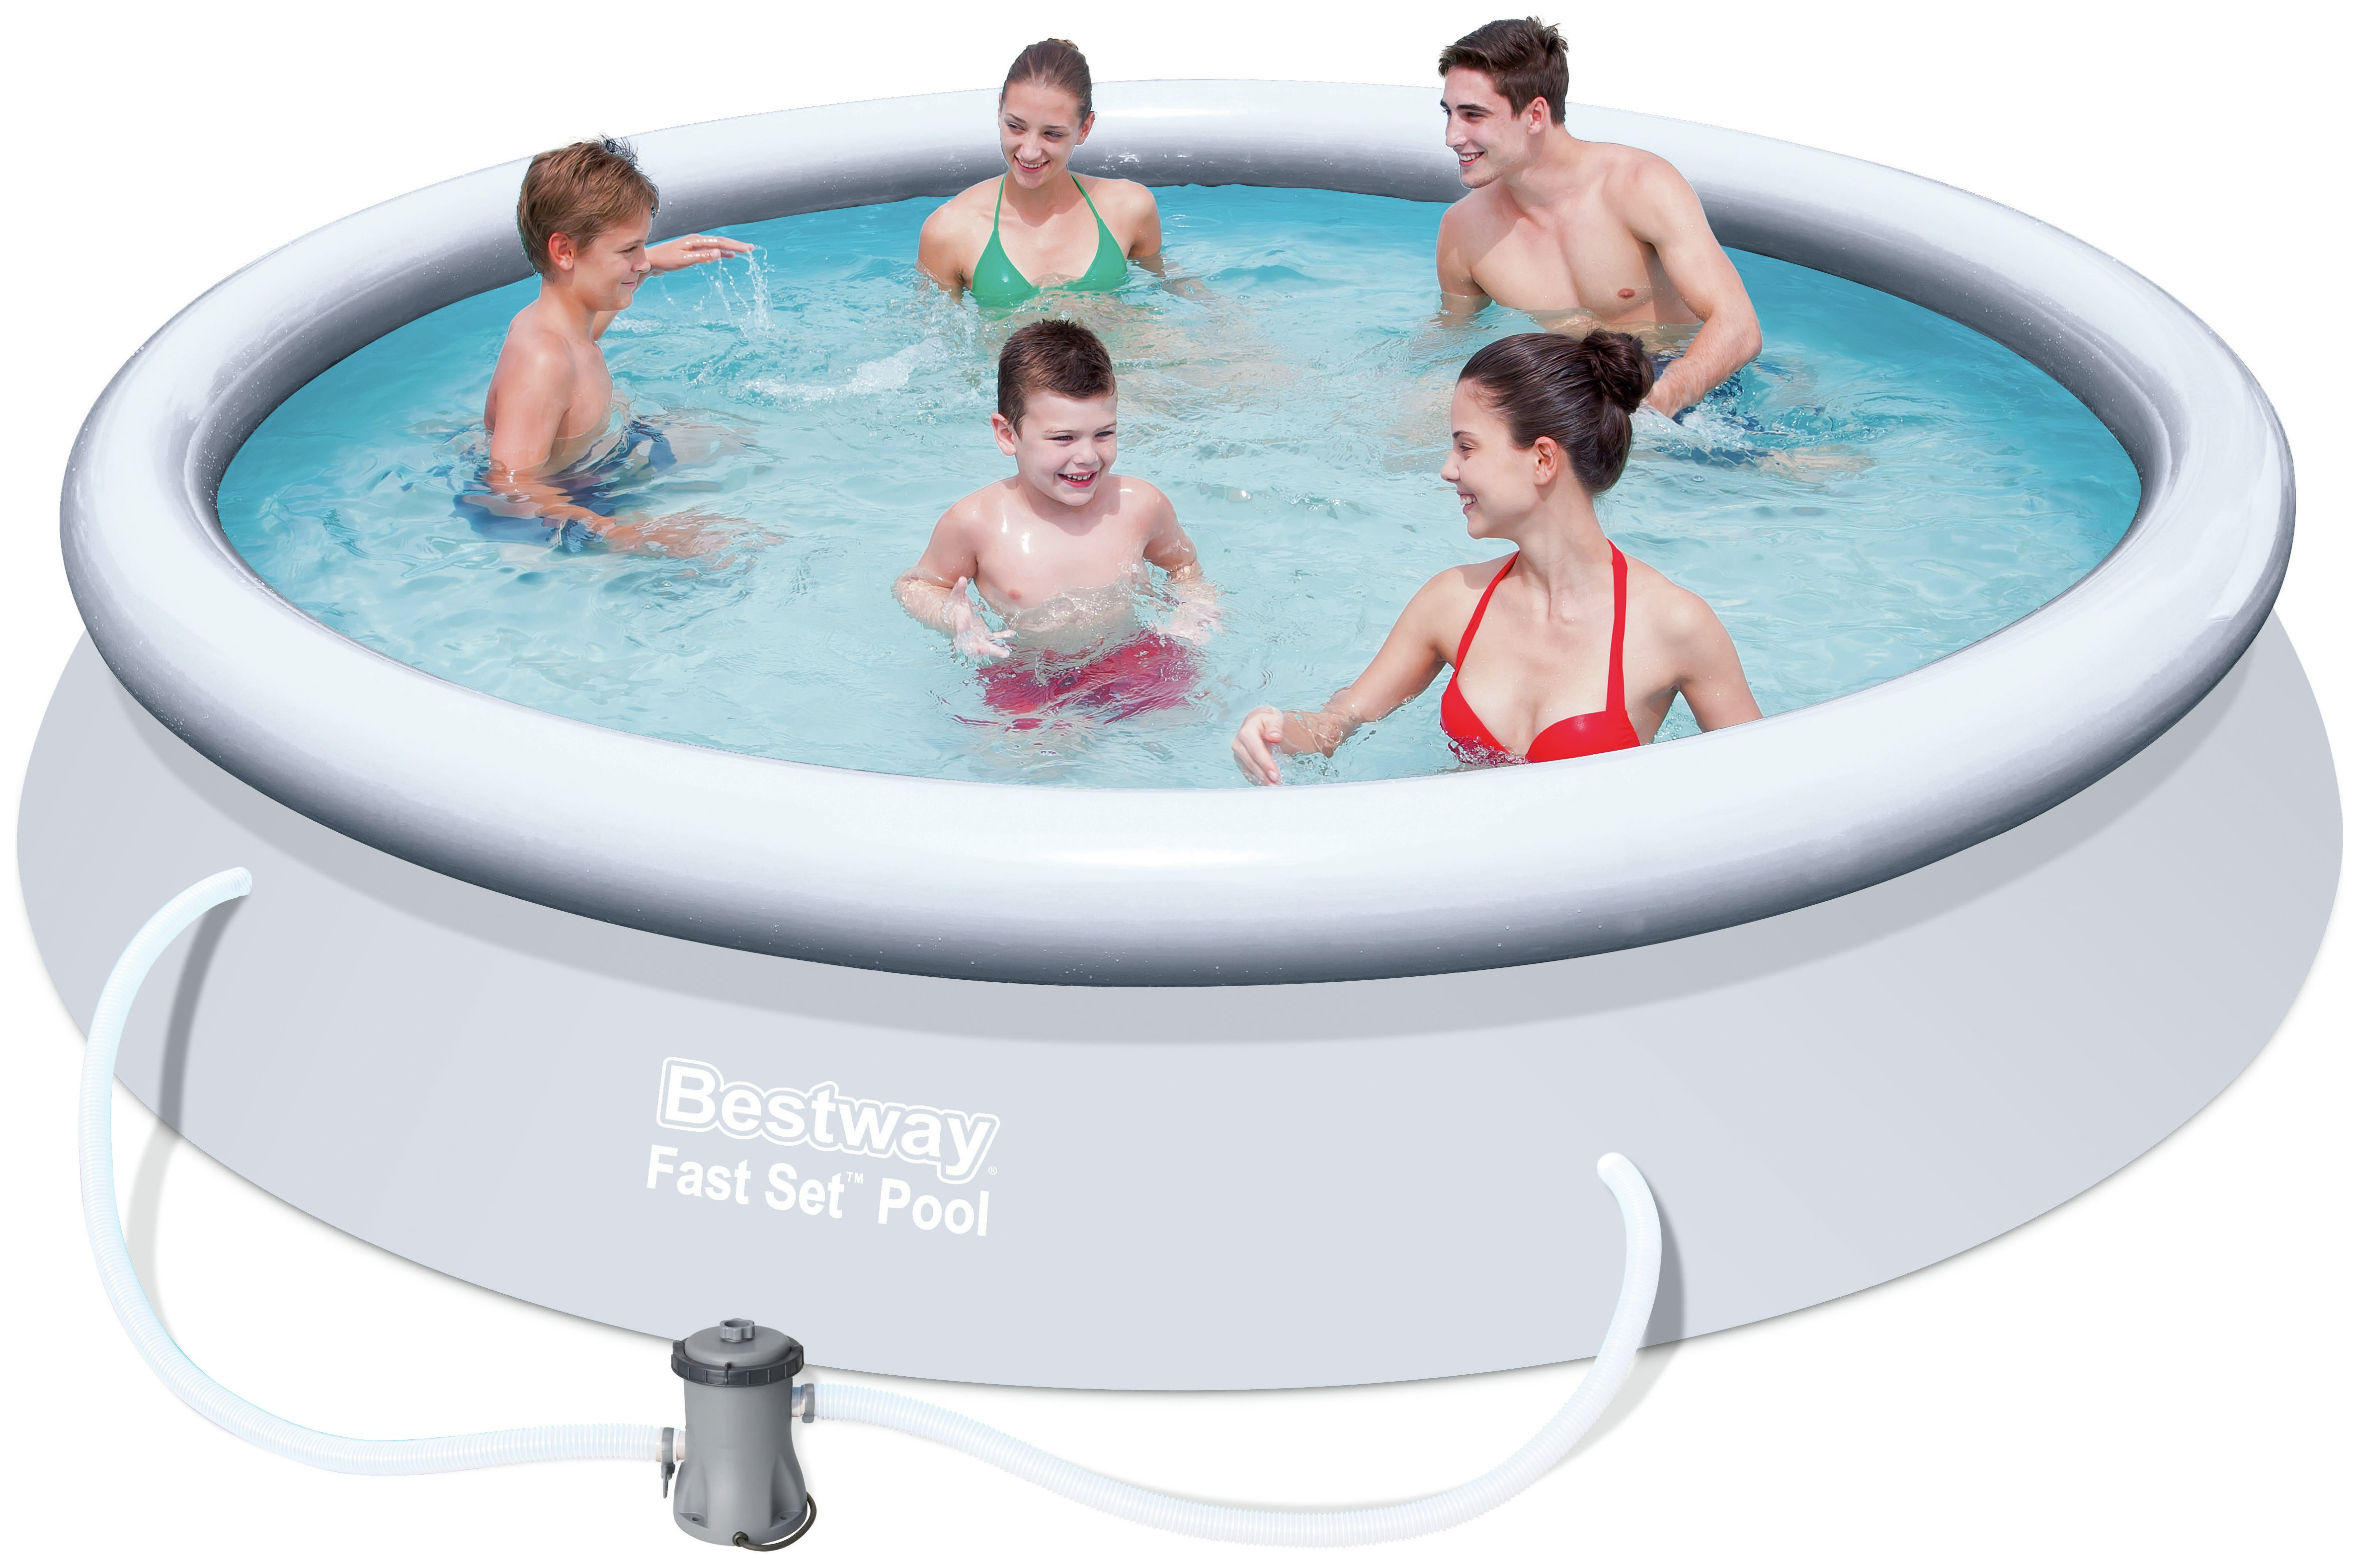 Sale on quick up pool set 12ft white bestway now for Quick up pool obi